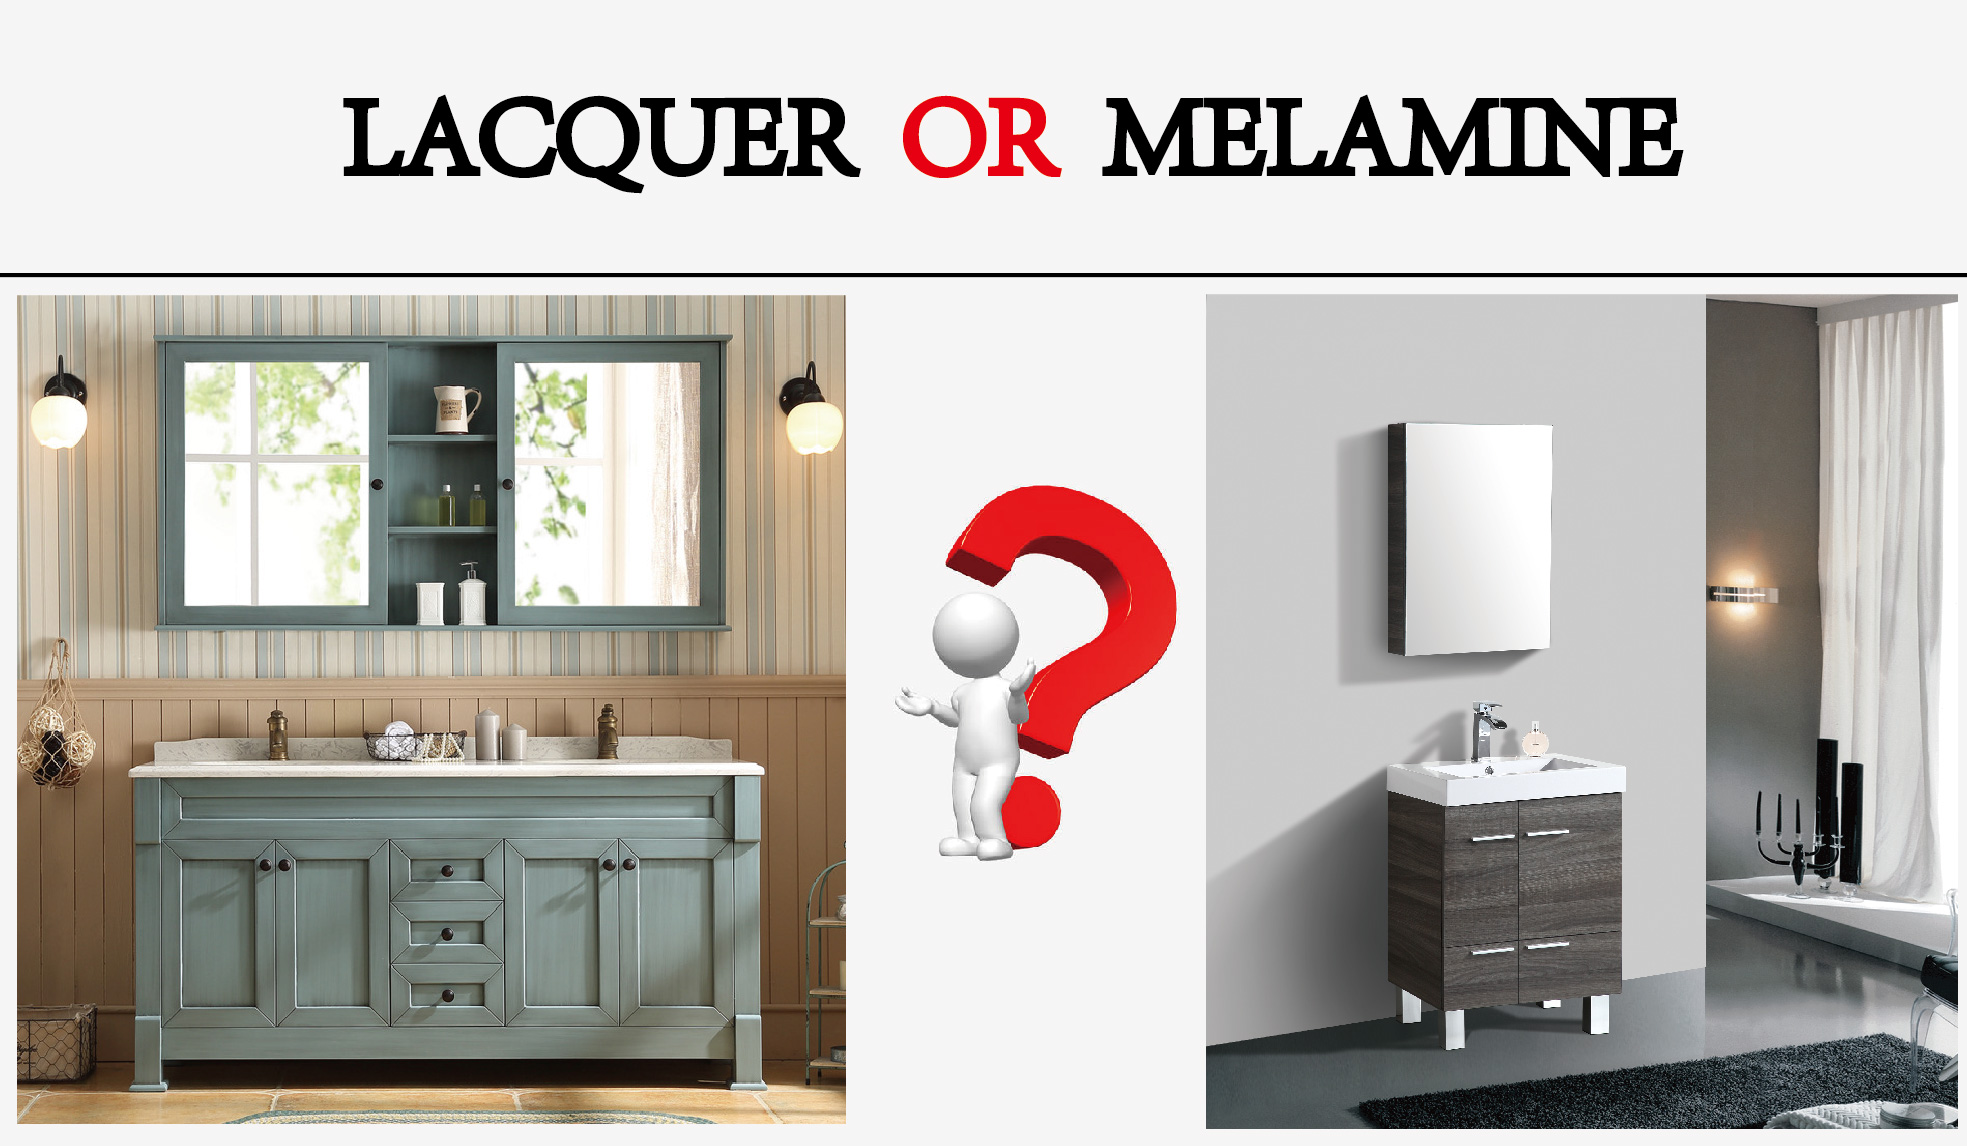 LACQUERED OR MELAMINE?